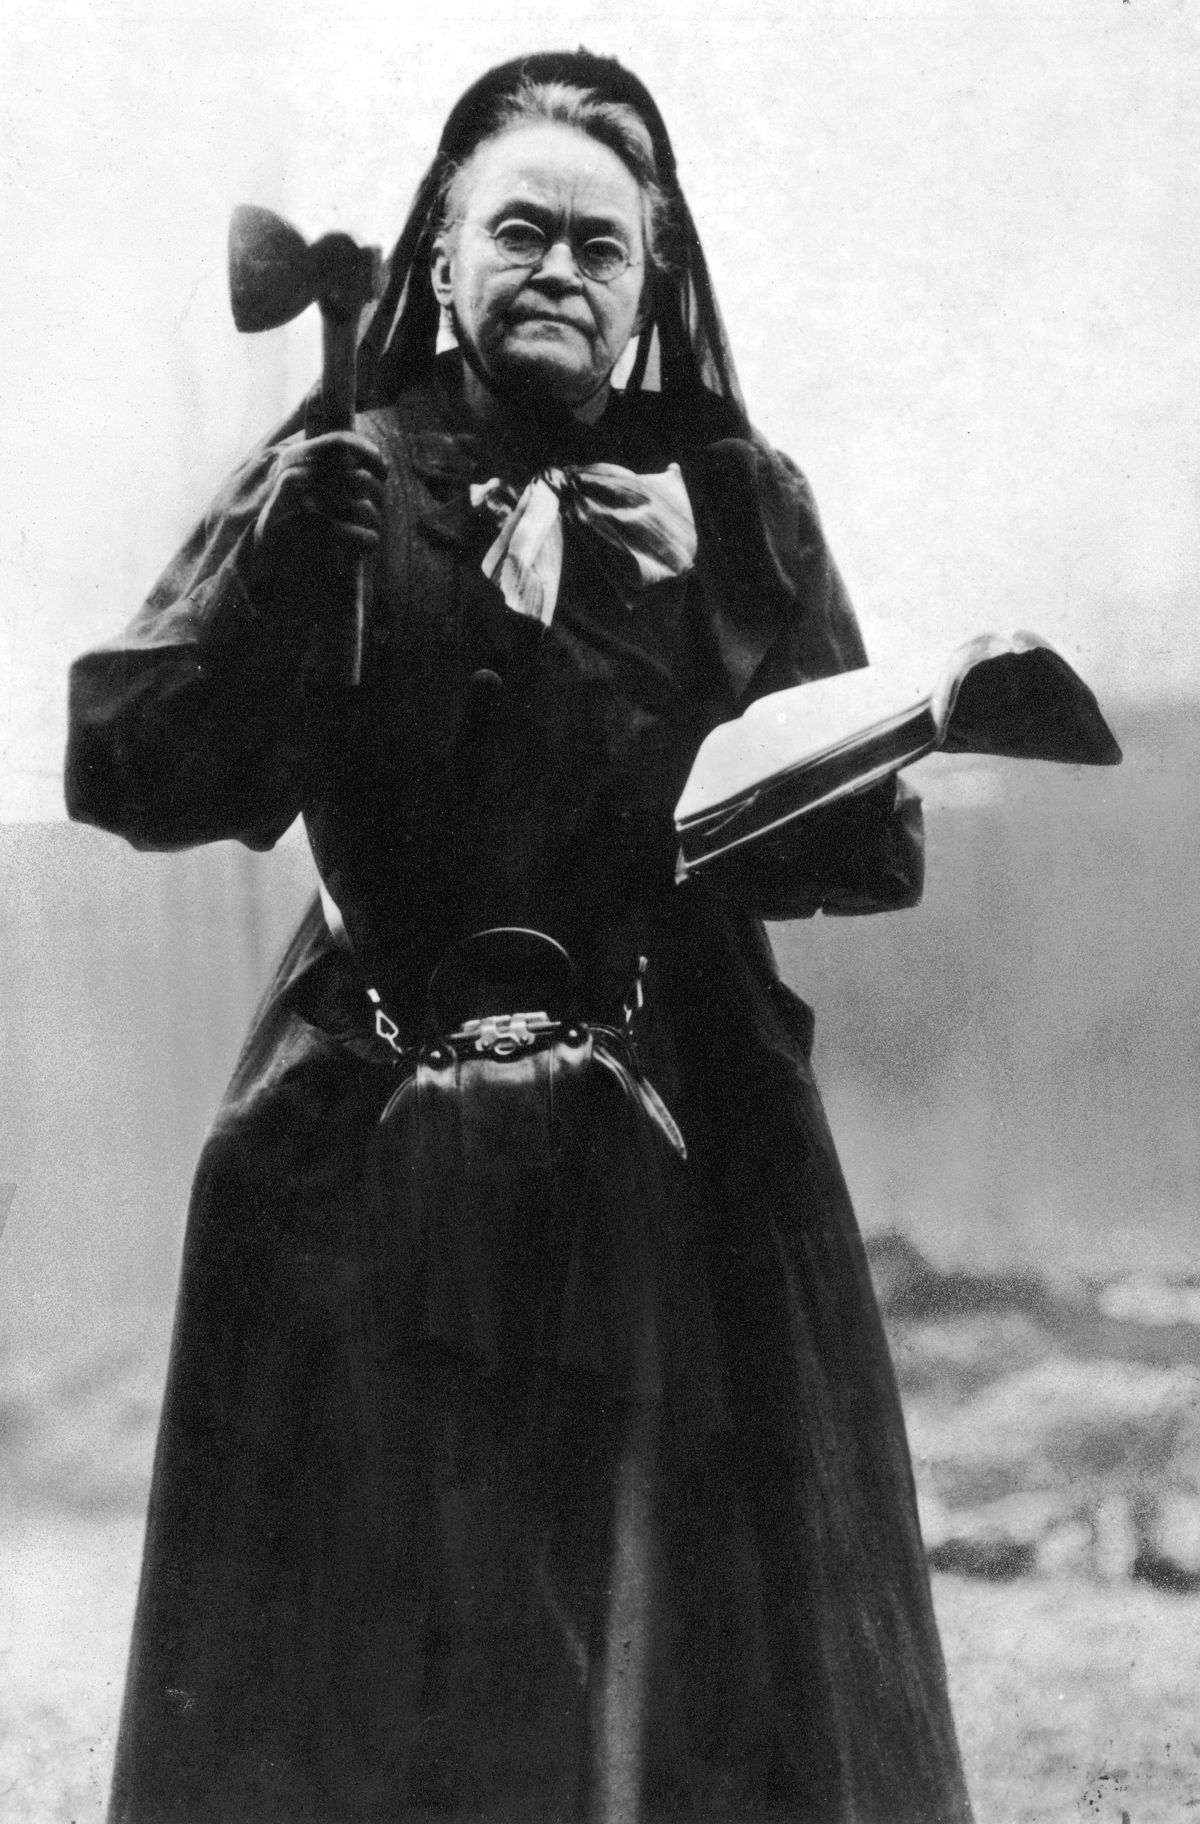 Portrait of American temperance reformer Carrie Nation (1846-1911) holding an axe and a bible. She wears a long dark dress, a dark veil, and a purse around her waist.